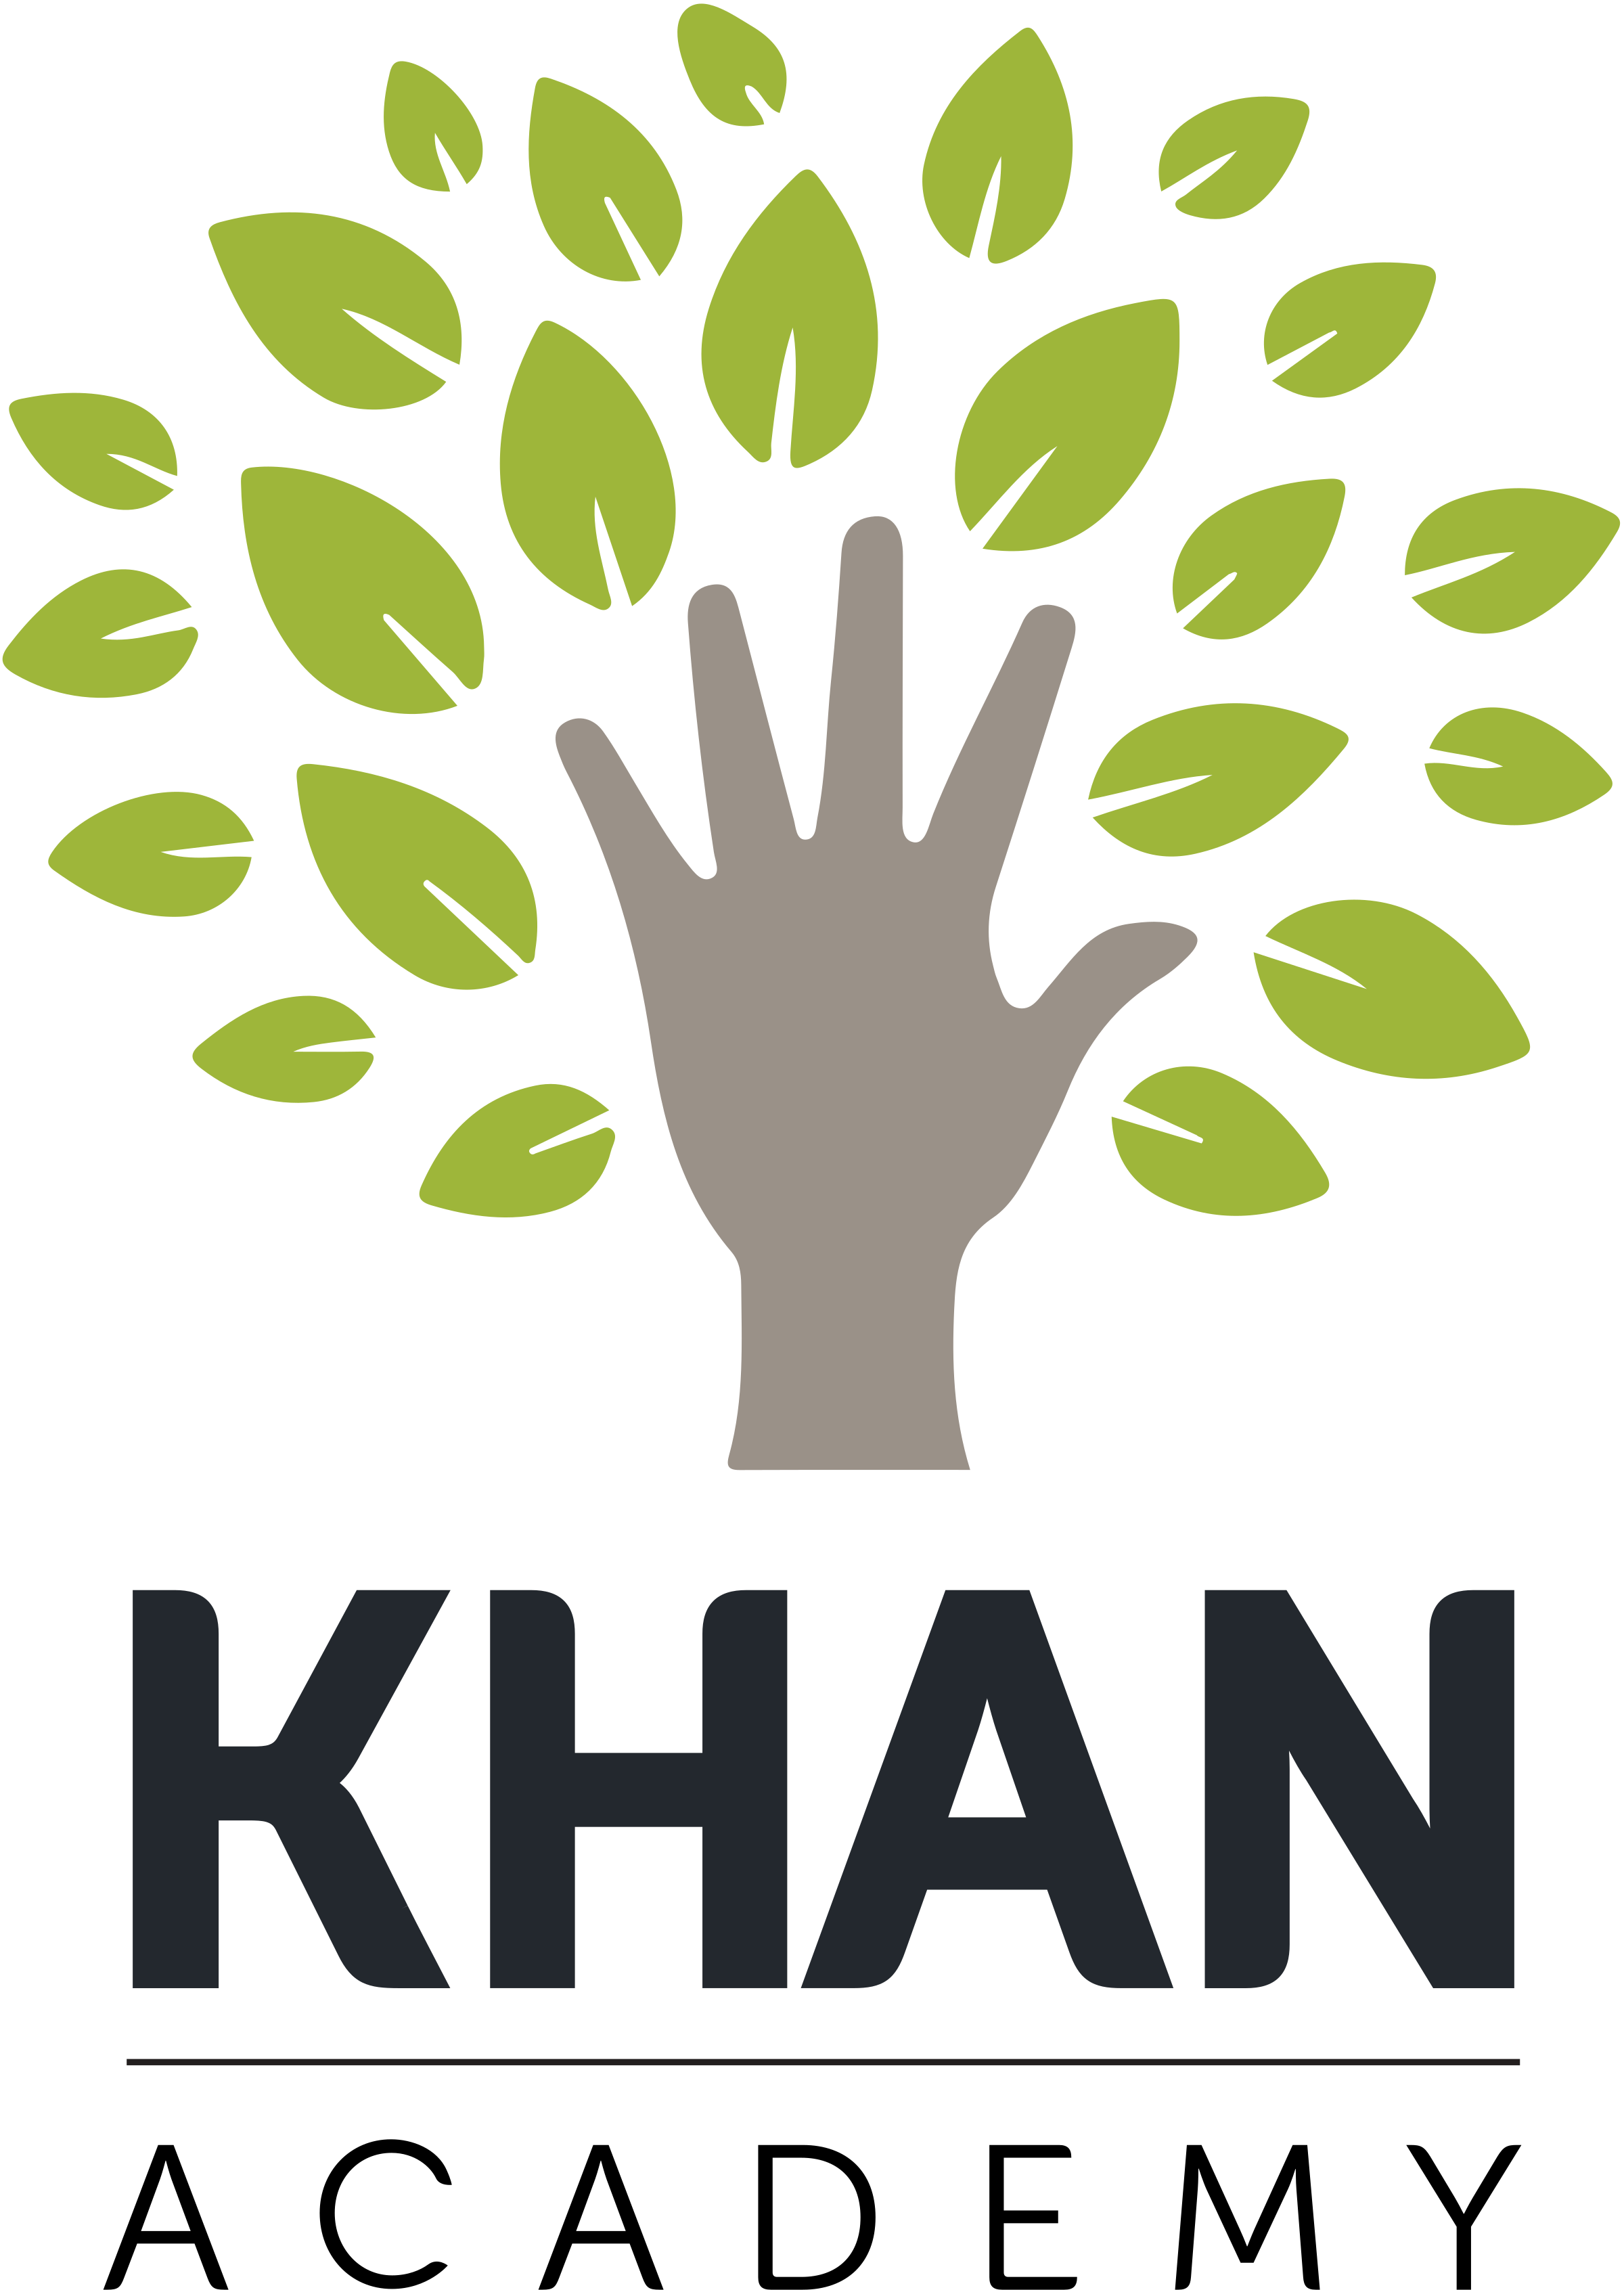 svg free Vector 1 khan academy. Logo png transparent svg